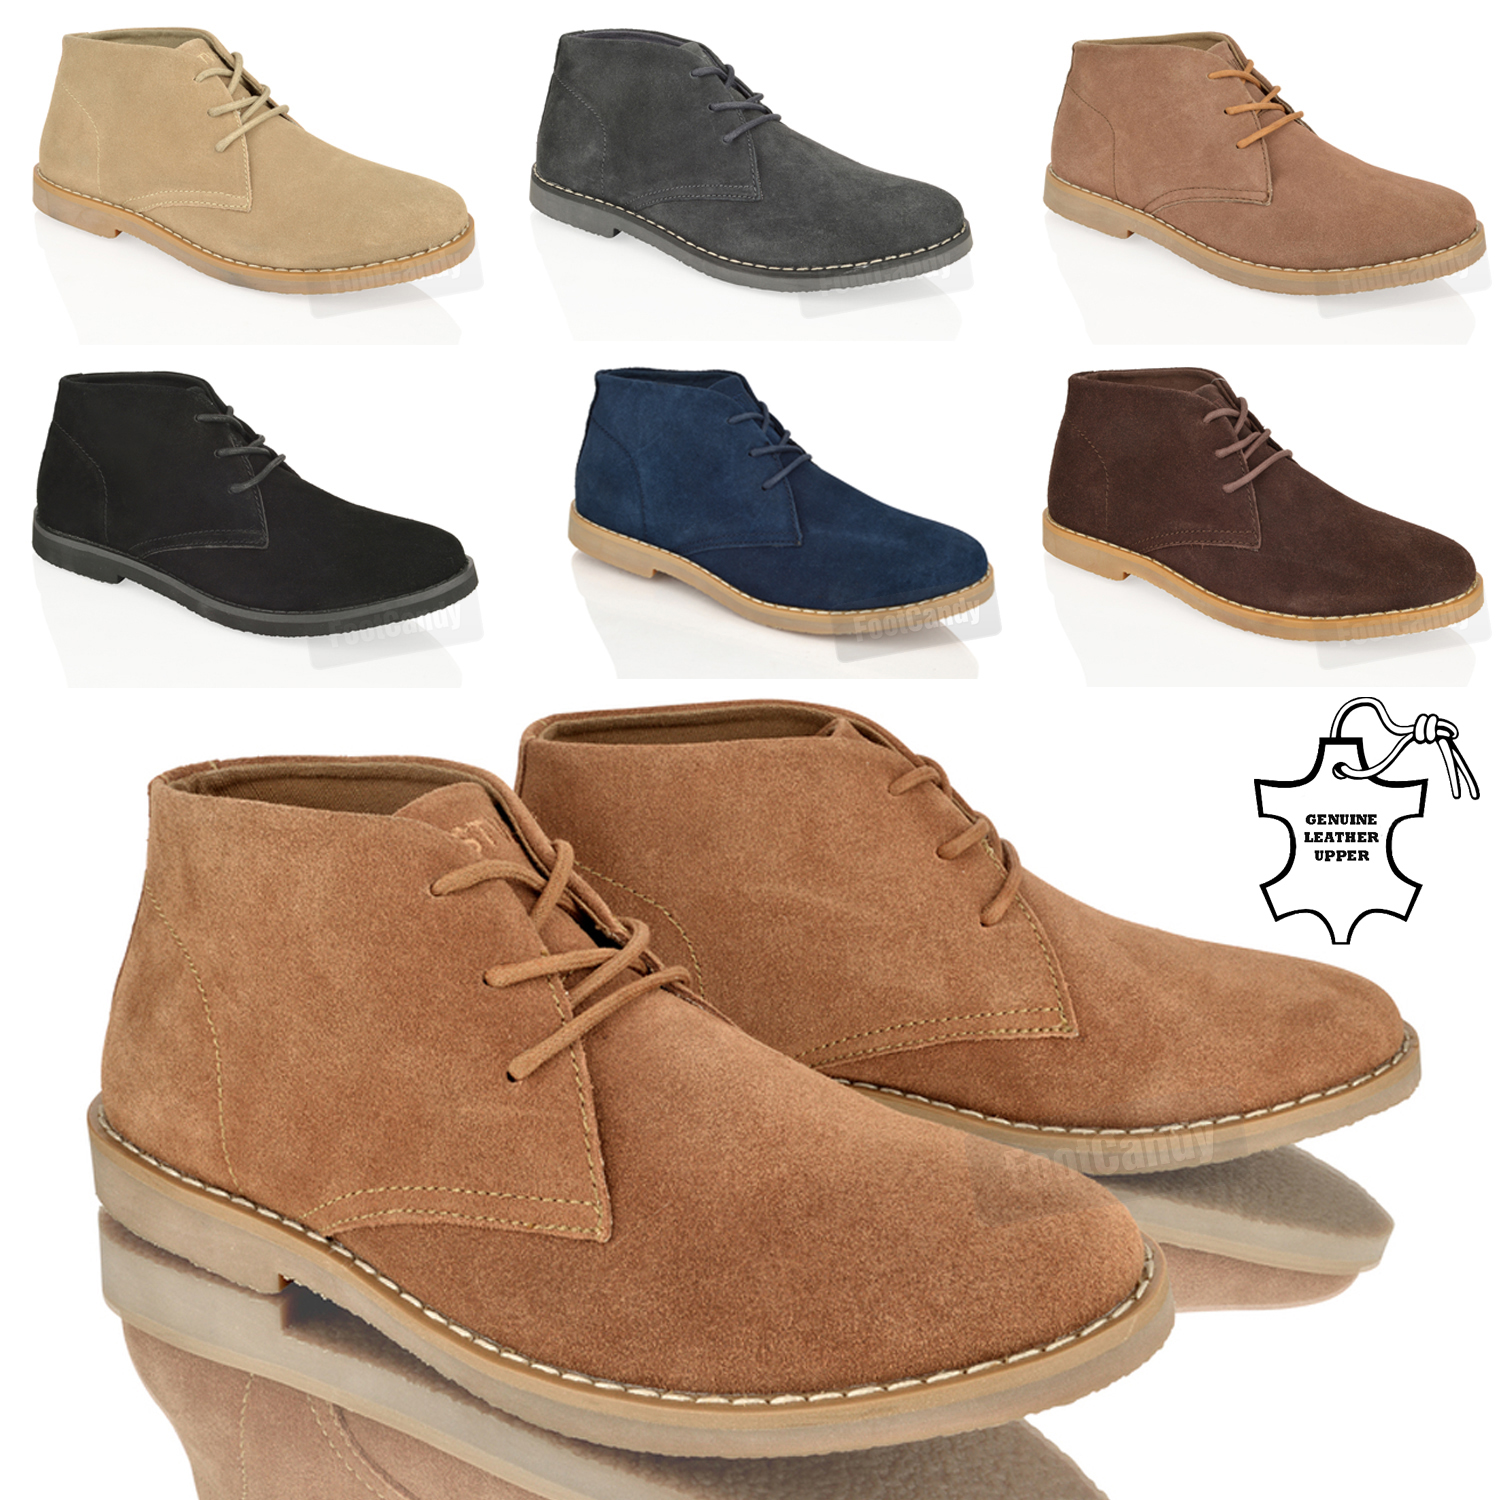 MENS BOYS ANKLE CHUKKA DESERT SUEDE LEATHER LACE COMFORT WORK ...